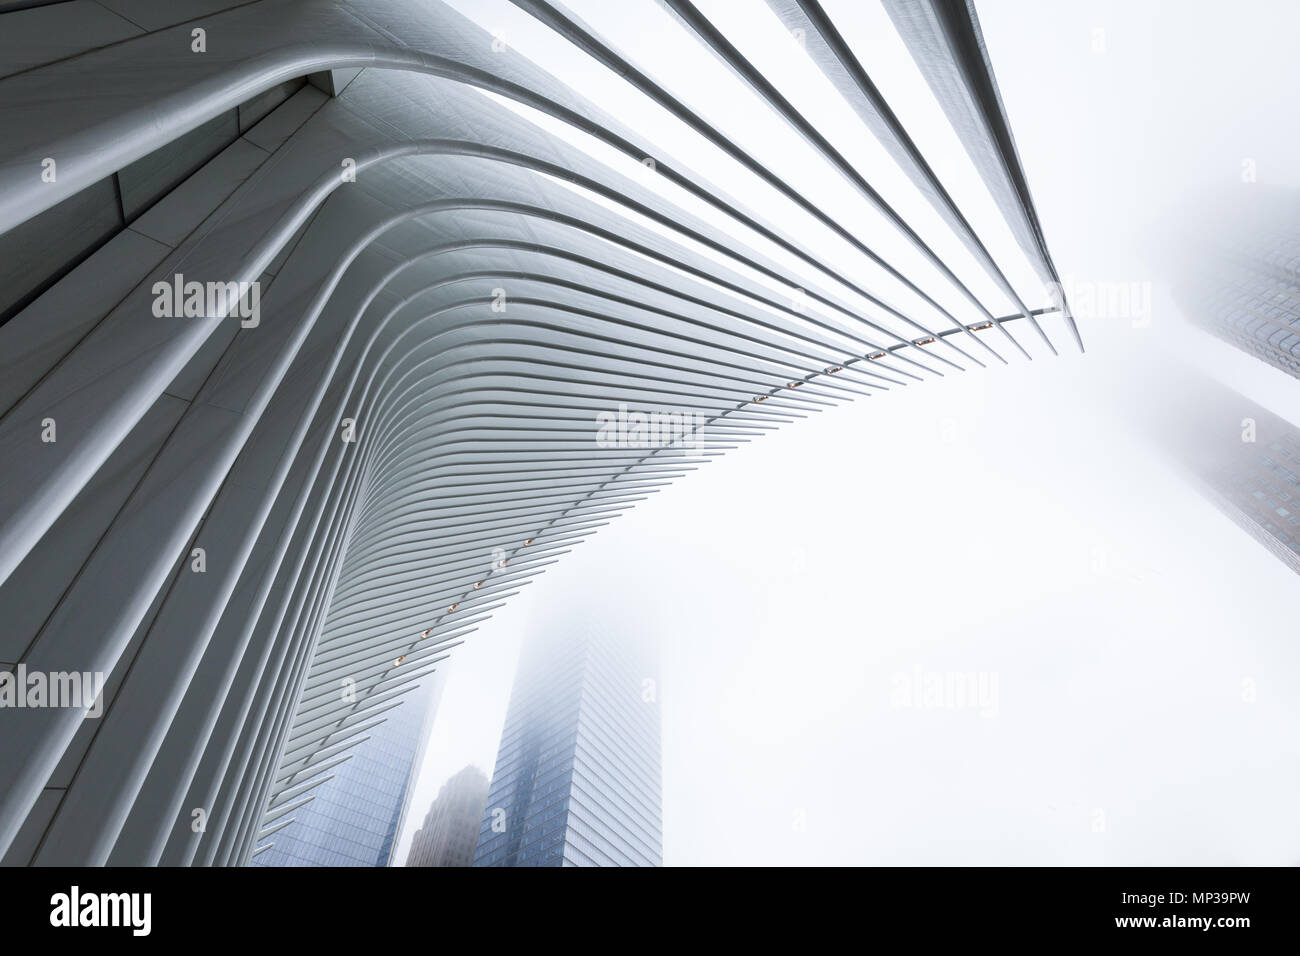 The Oculus building in fog, Lower Manhattan, New York City, USA. - Stock Image